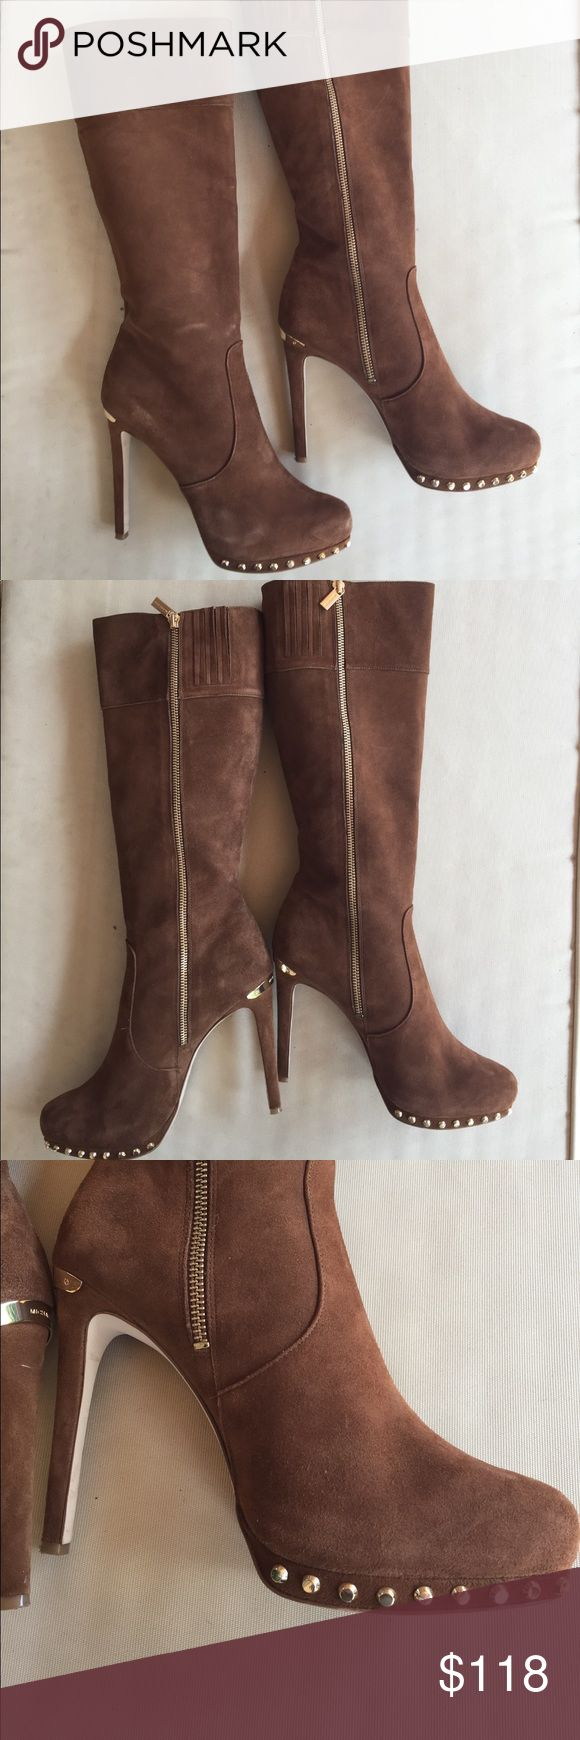 Micheal Kors Brown Suede Boots -- VERY SEXY! Micheal Kors Brown Suede Boots -- VERY SEXY! Michael Kors Shoes Heeled Boots